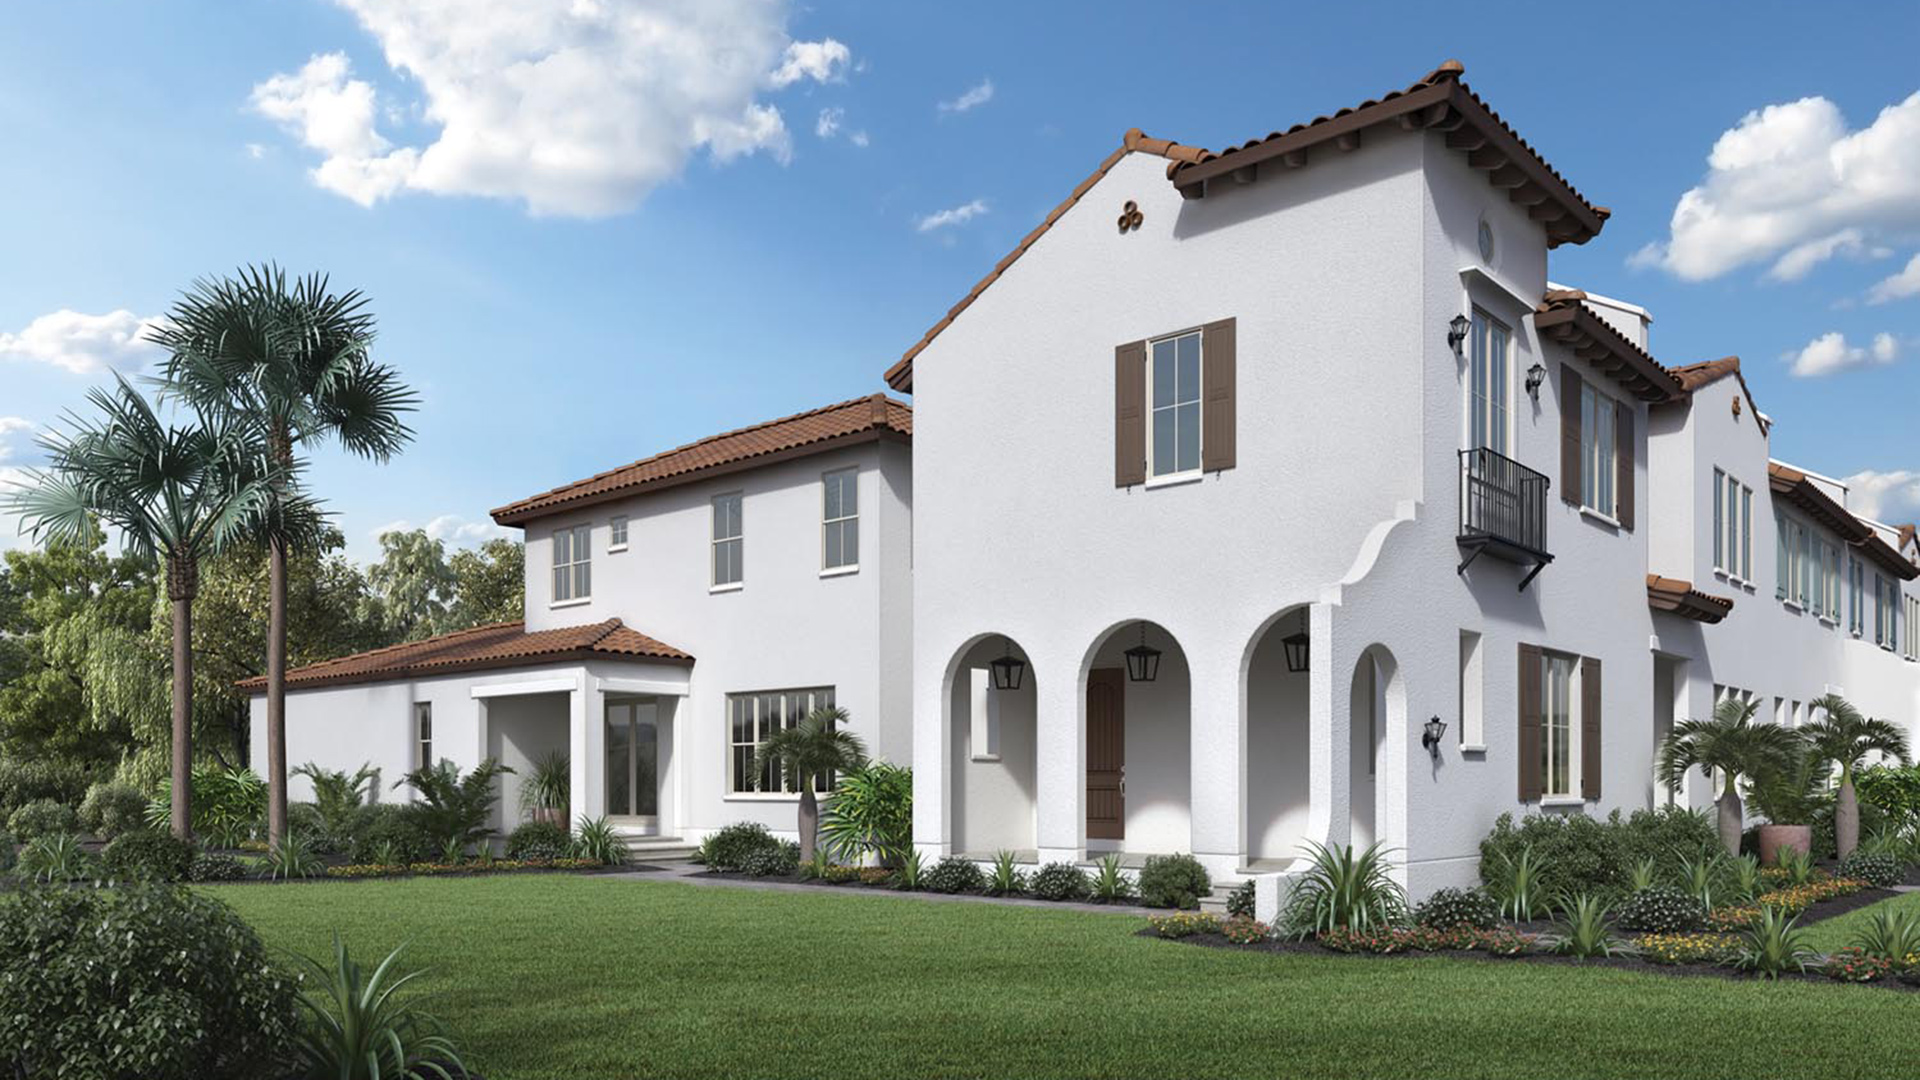 Lakeshore townhomes the enzo home design for Italianate homes for sale